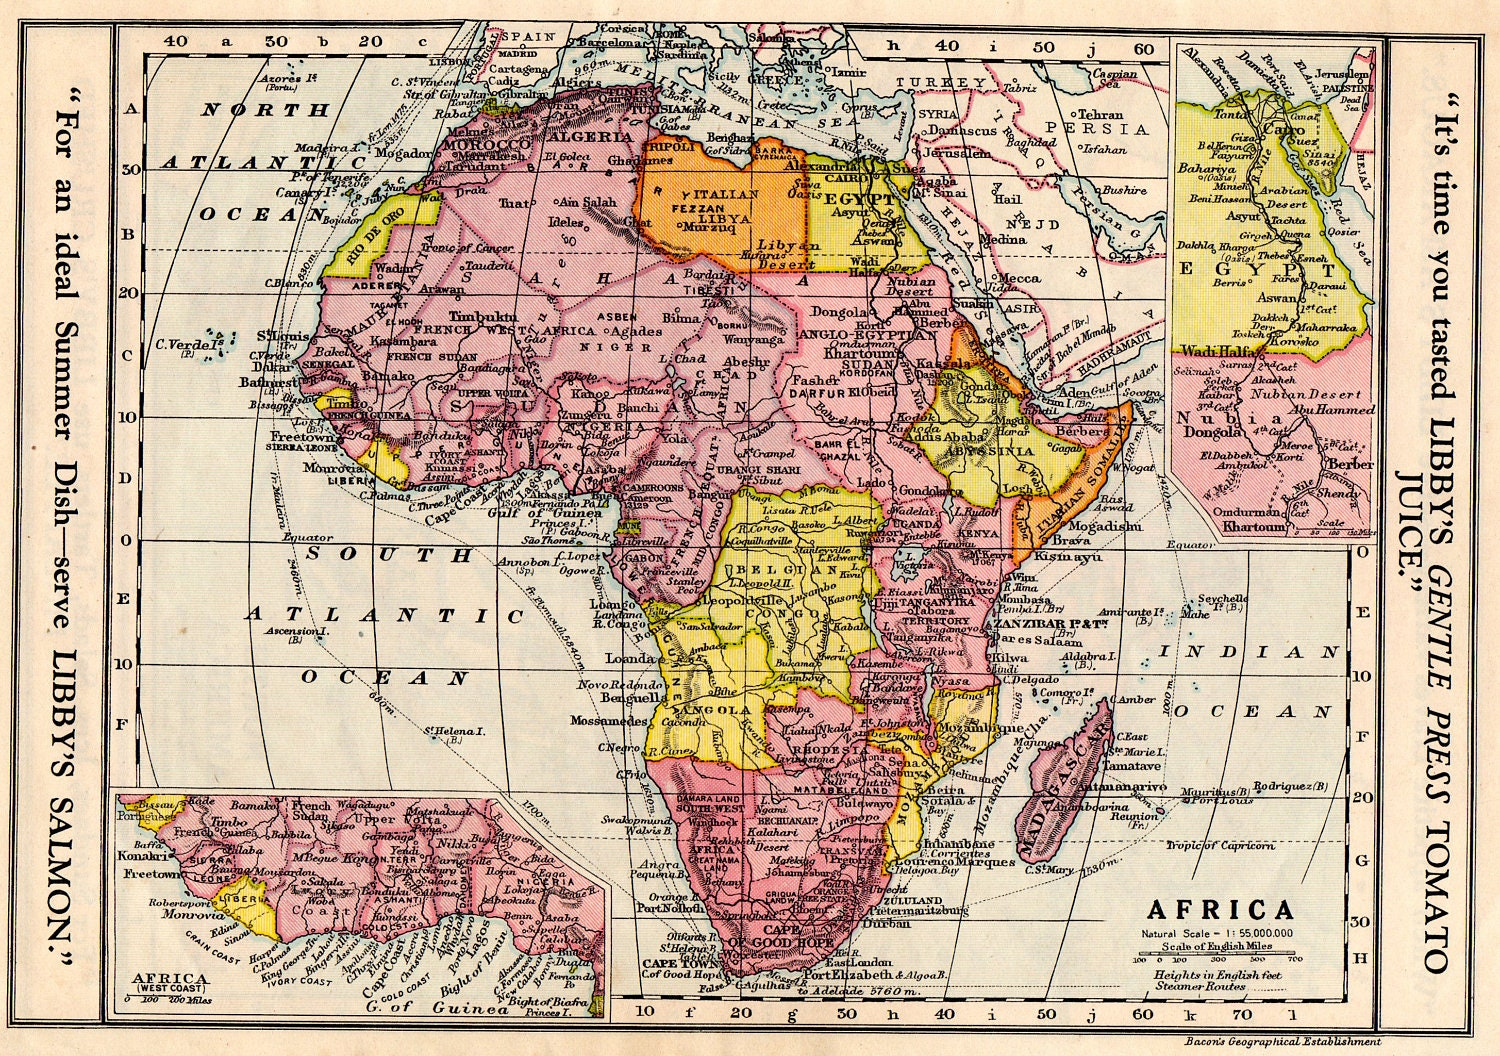 Map Of Africa 1700.Africa Vintage Map 1930 Egypt Madagascar